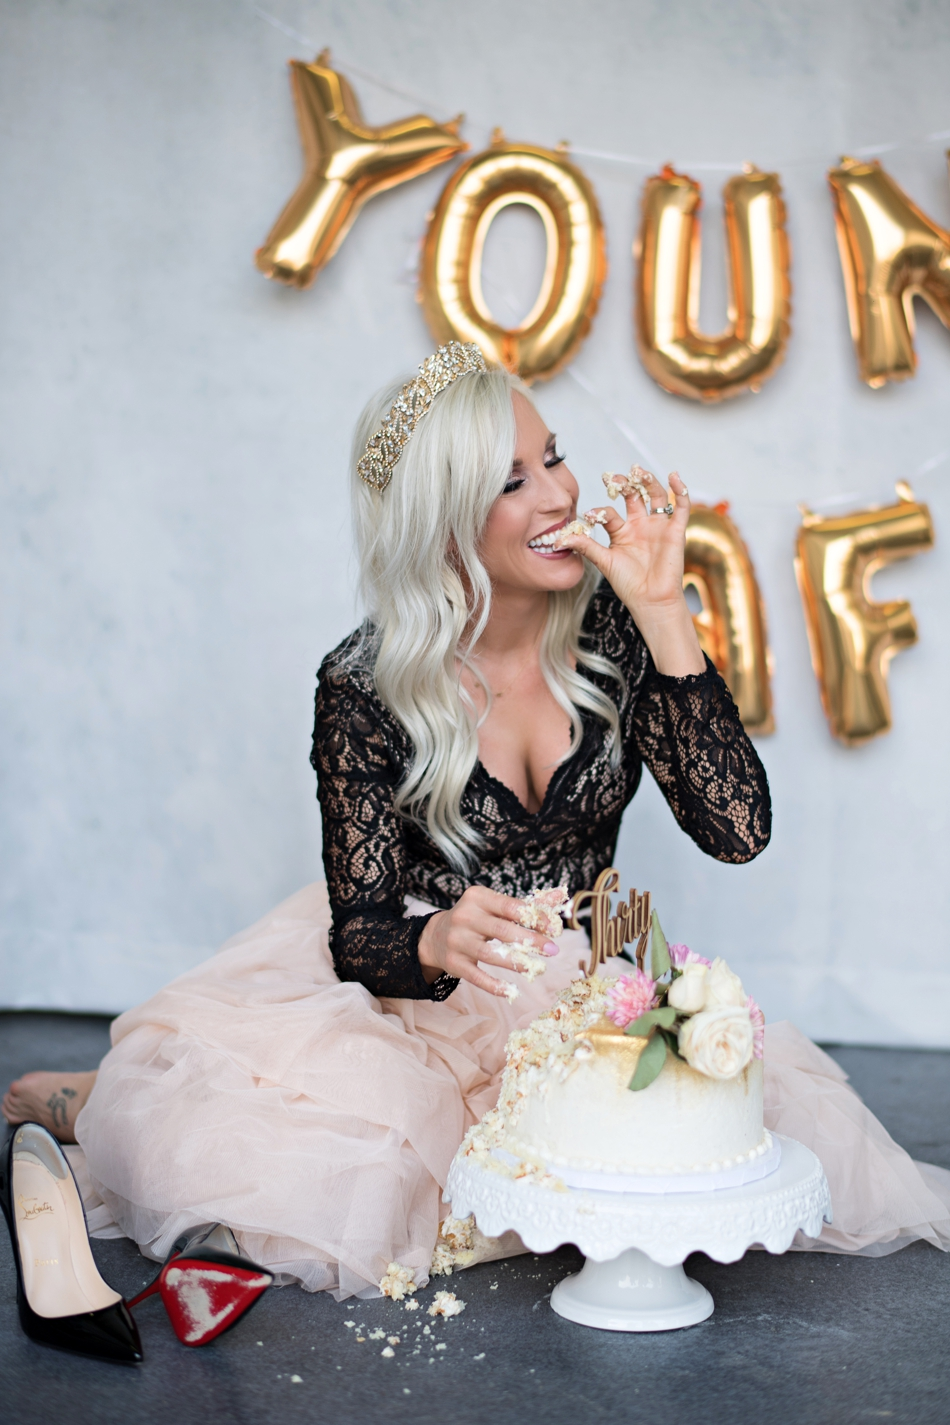 30th Birthday Cake Smash Orlando Wedding Photographers